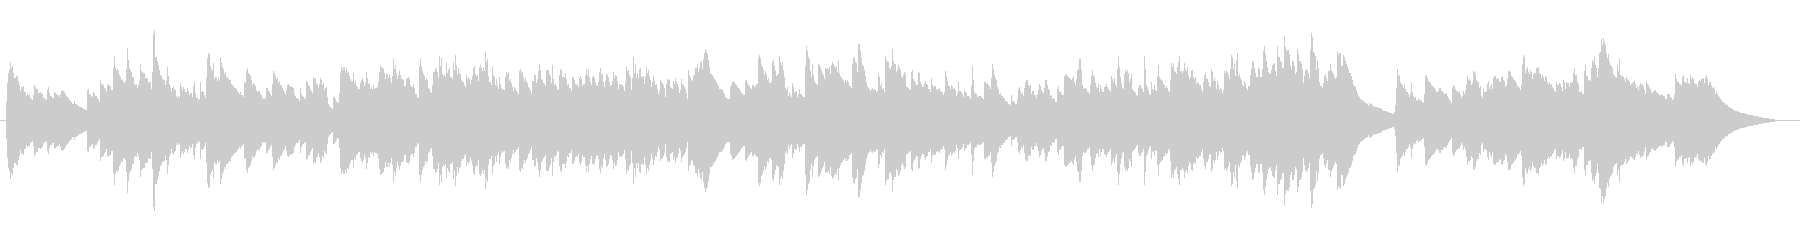 Wagner's Nuremberg オ ル music box style's unreproduced waveform